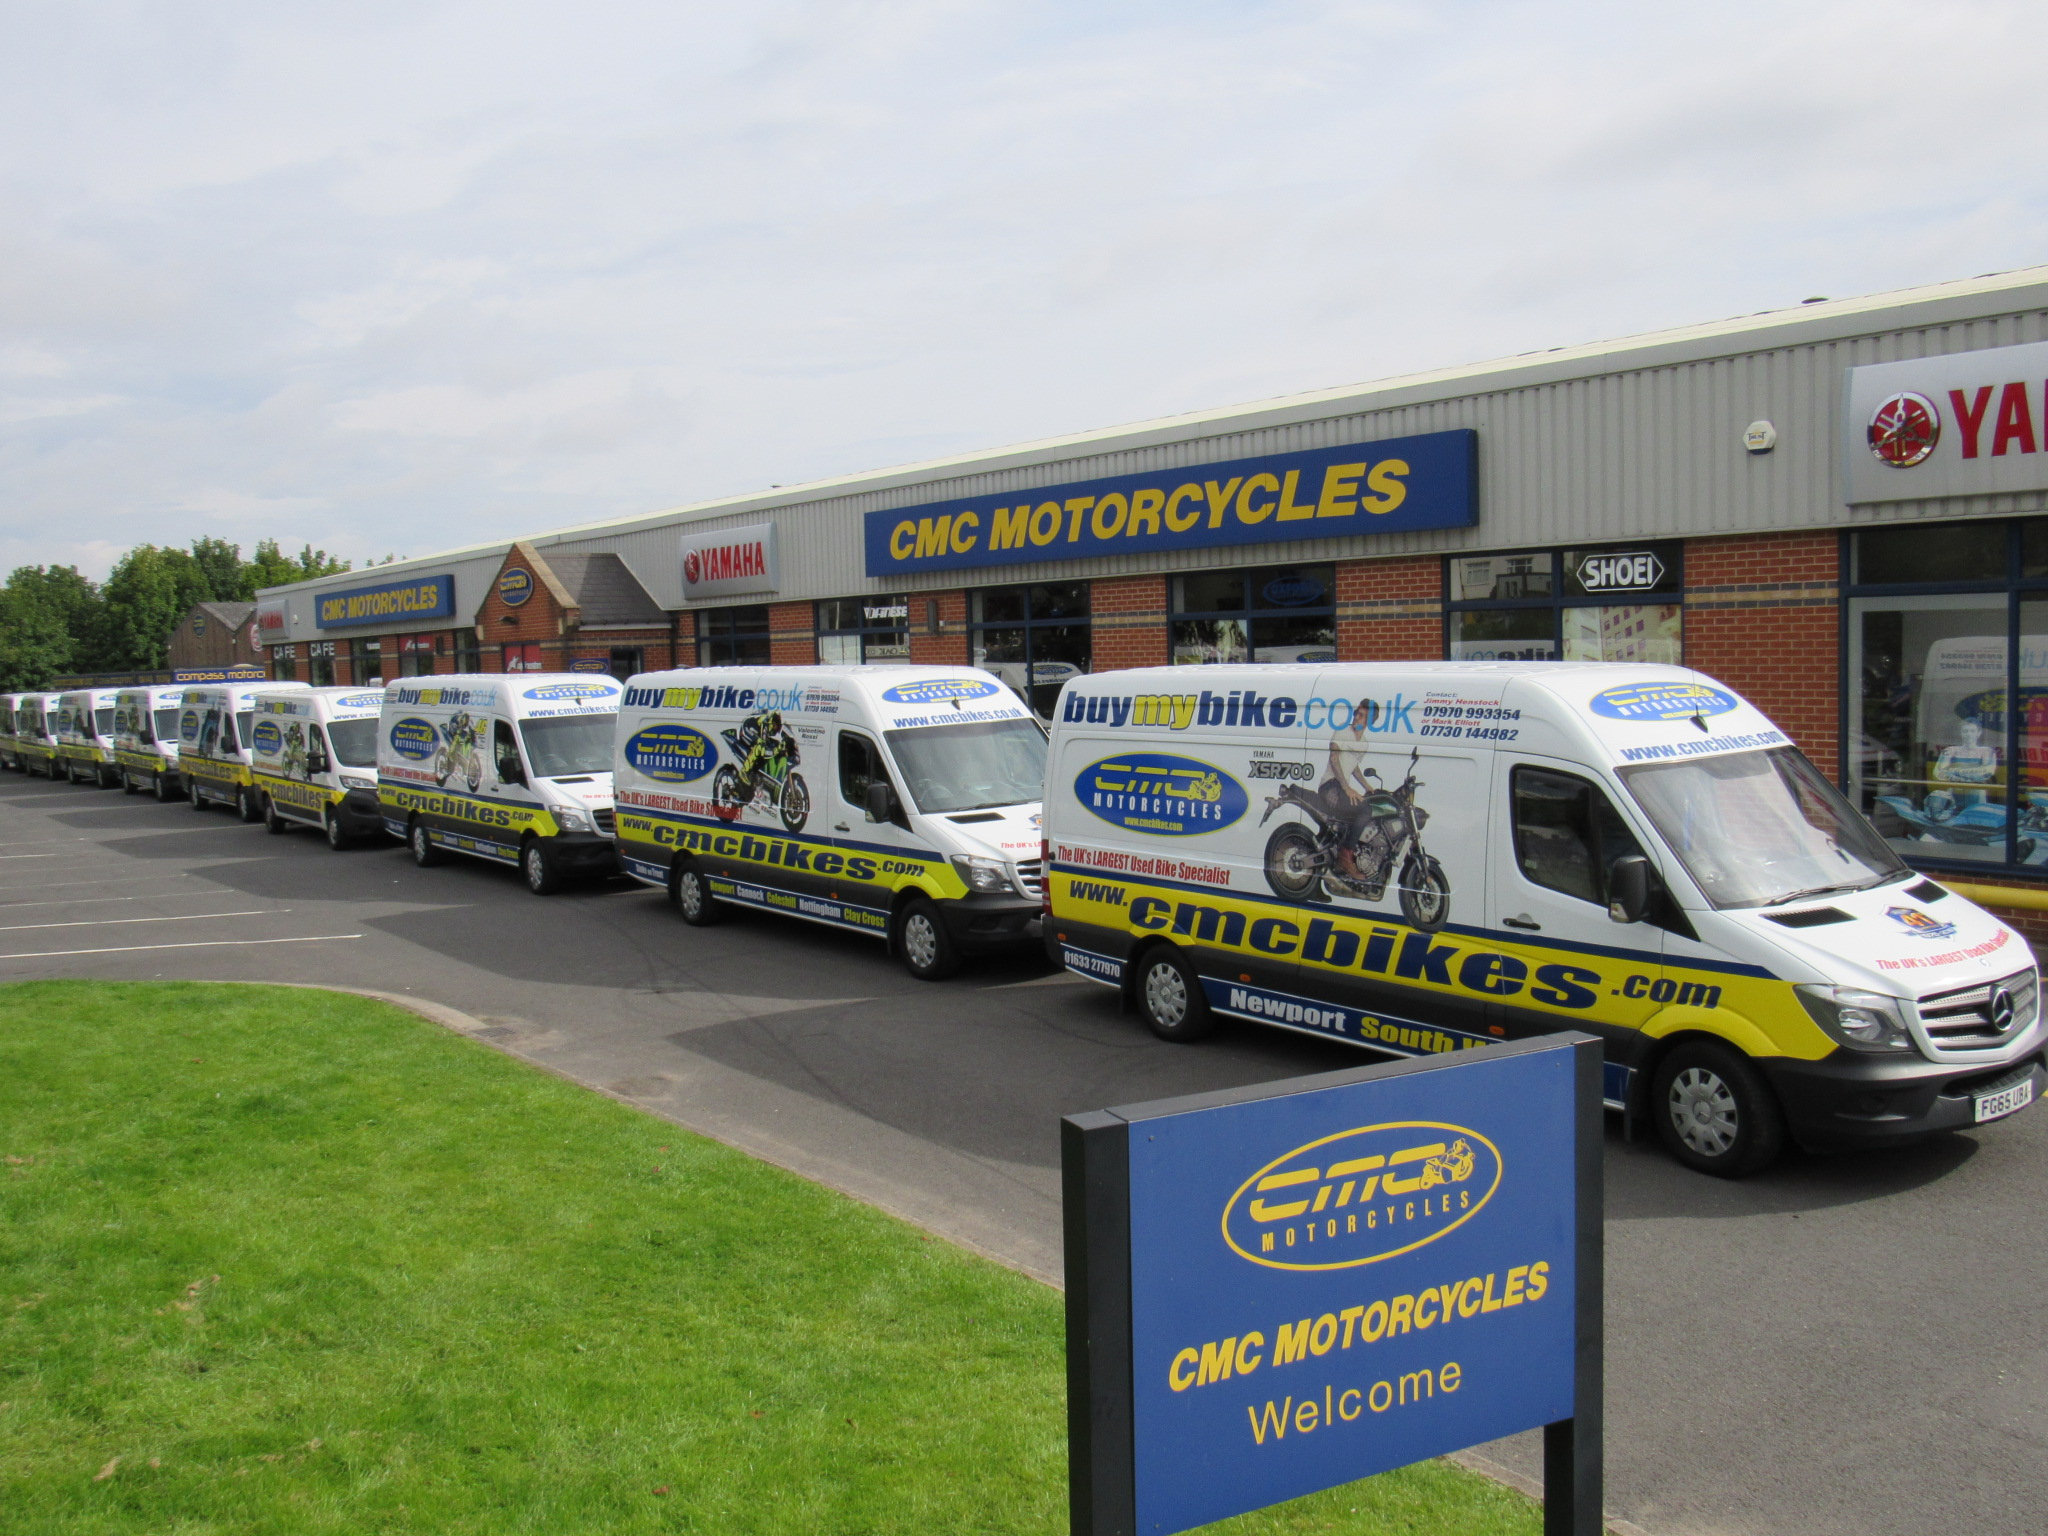 Part of CMC Motorcycles Ltd